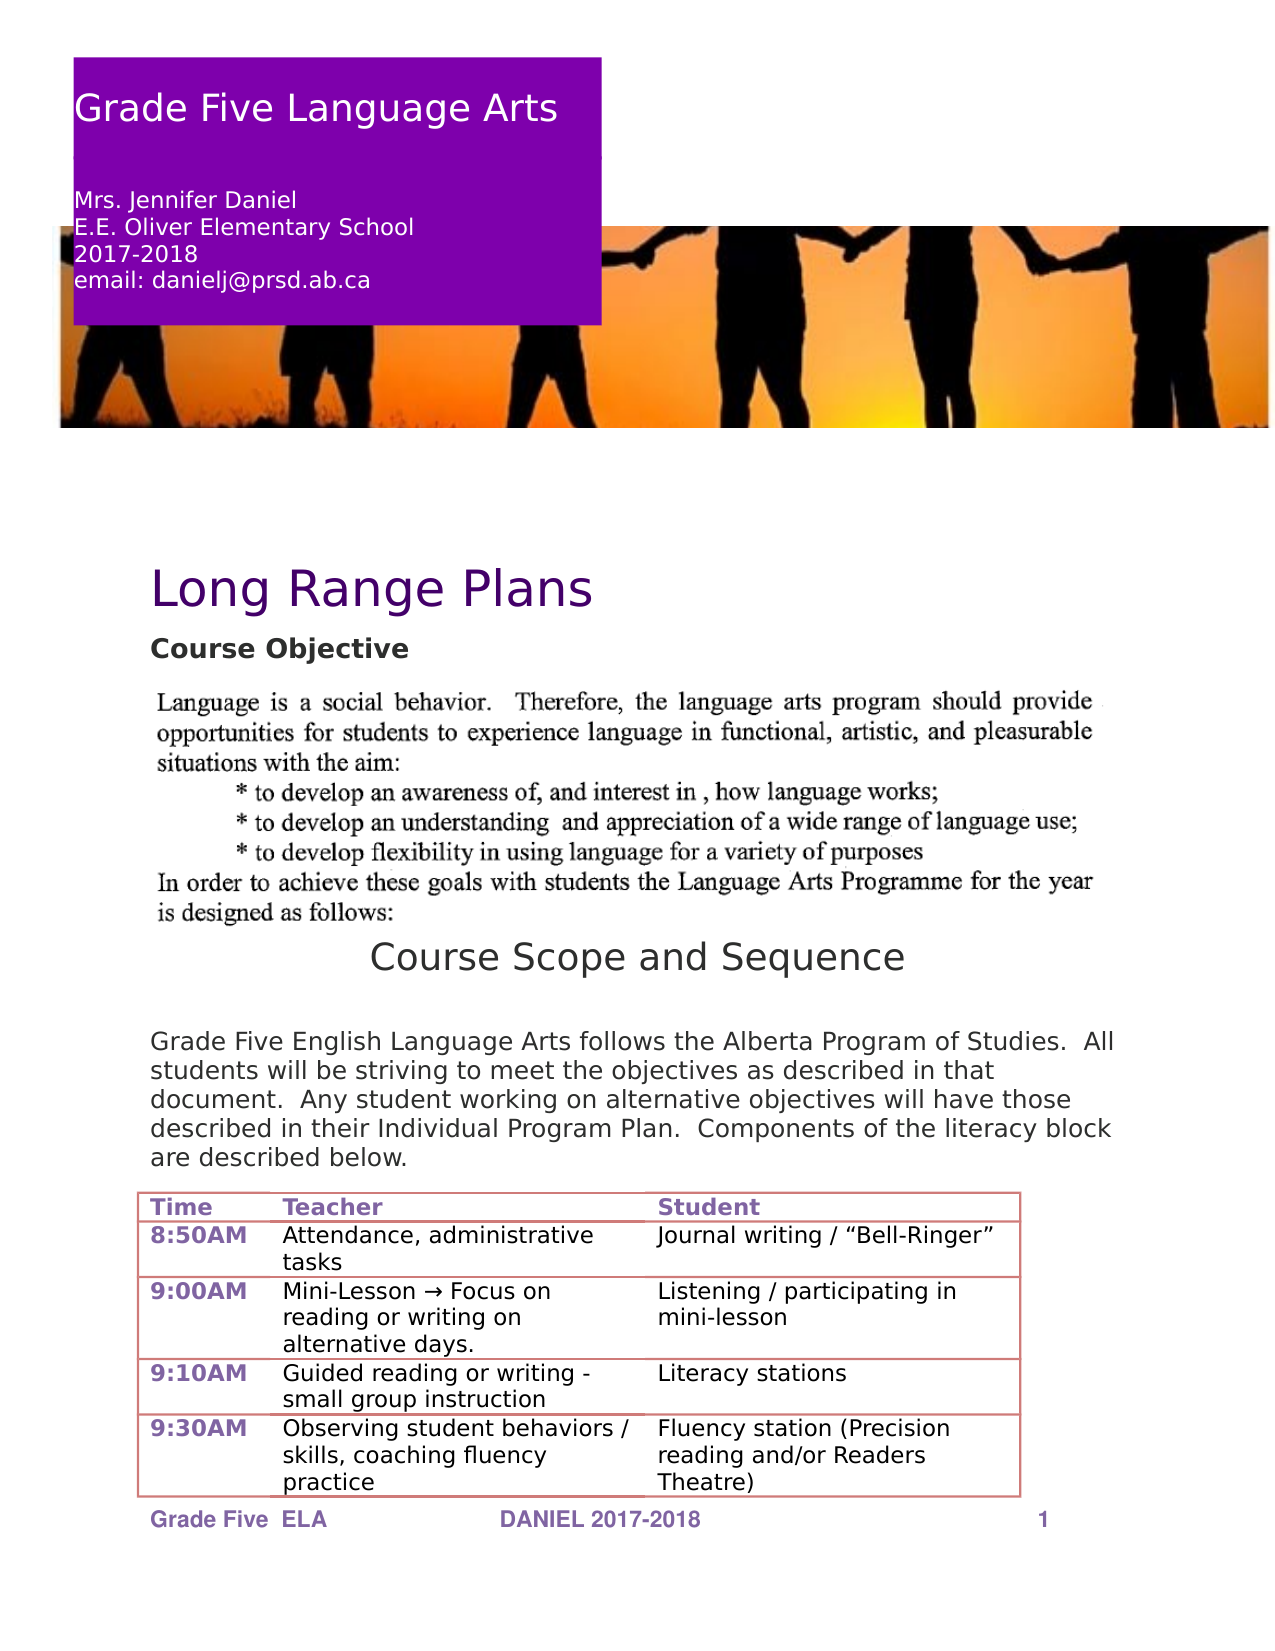 Grade 5 ELA Long Range Plans Resource Preview